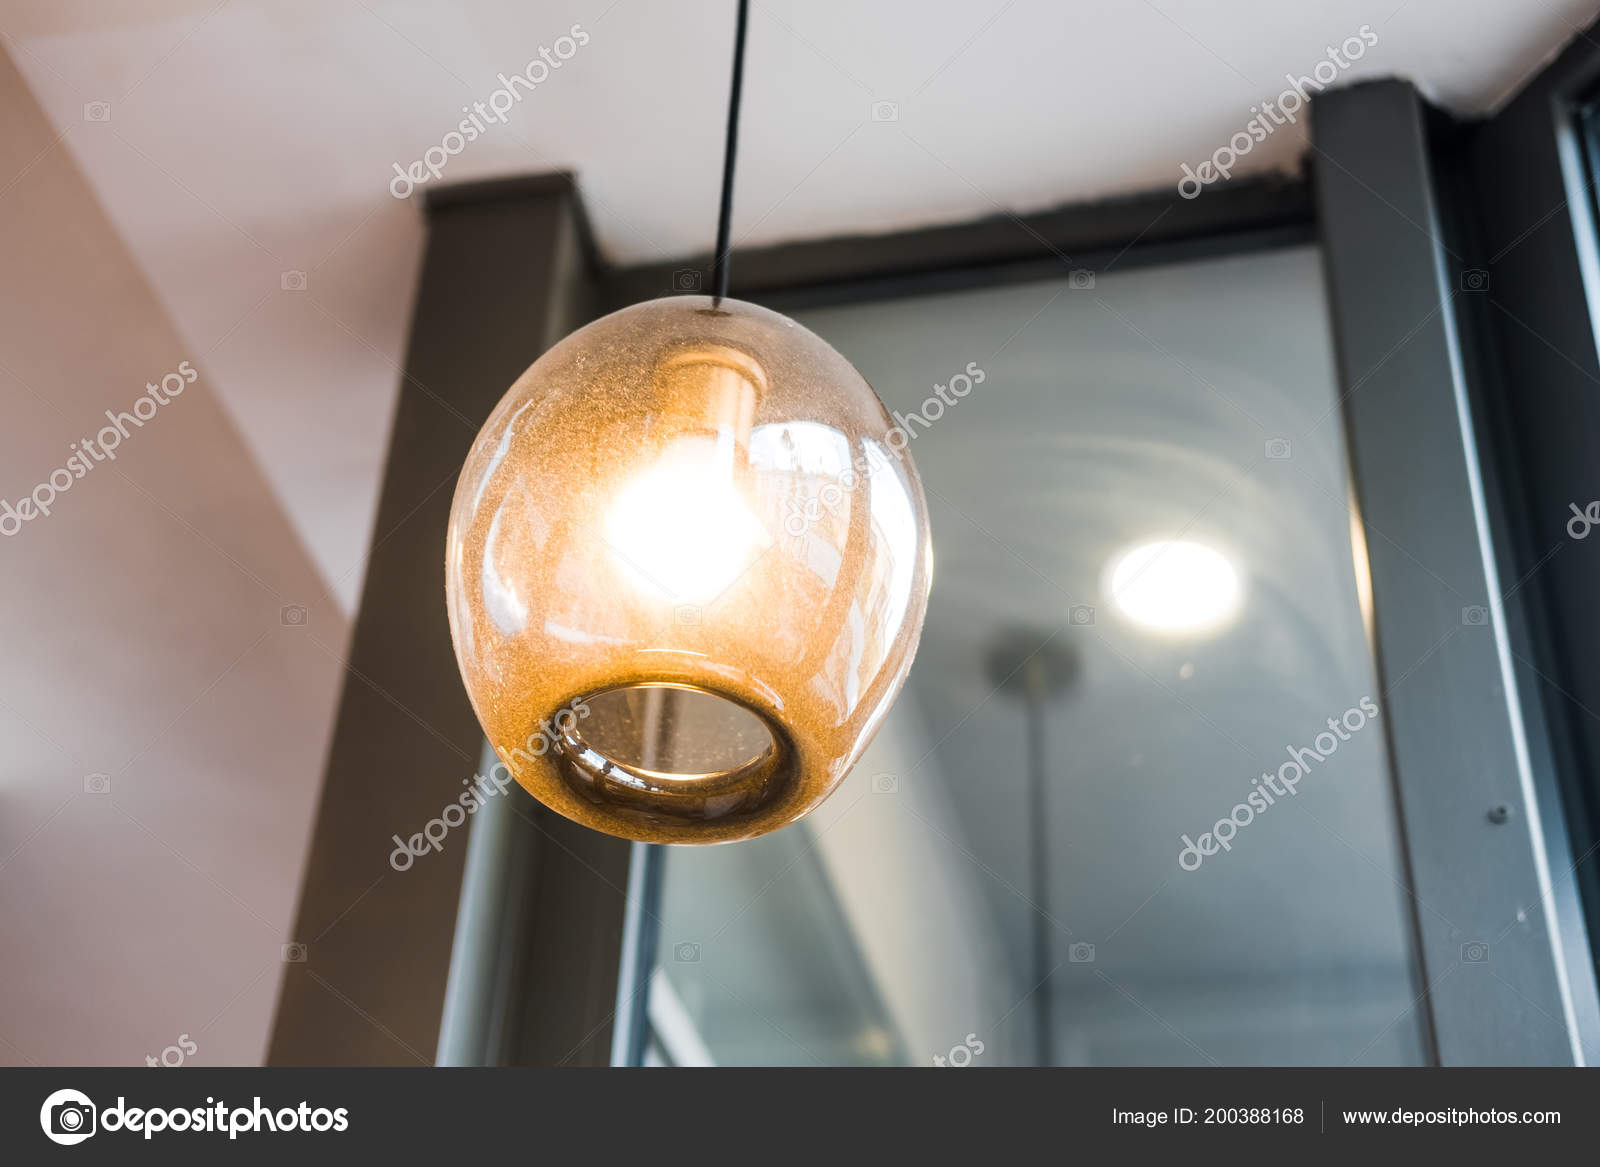 Coffee Shop Designs Ideas Glass Pendant Lighting Home Restaurant Coffee Shop Store Design Ideas Stock Photo C Julypi 200388168